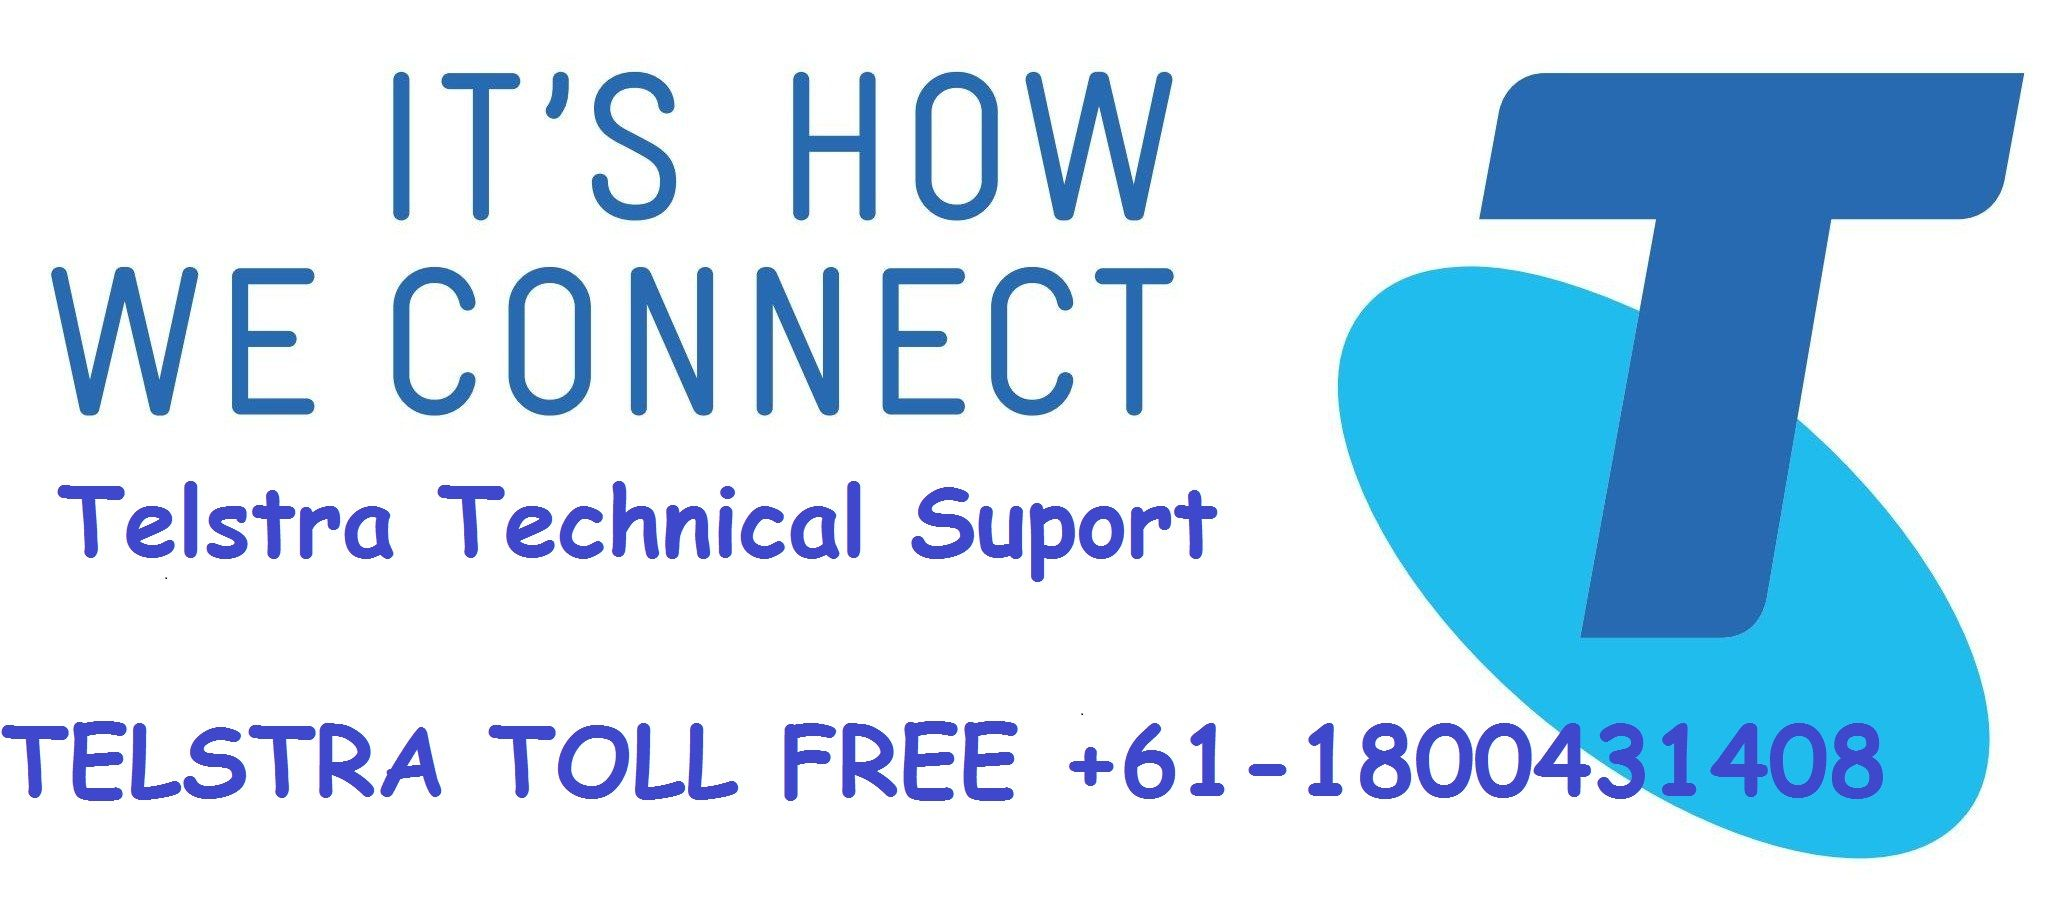 we are service provied in Telstra customer support